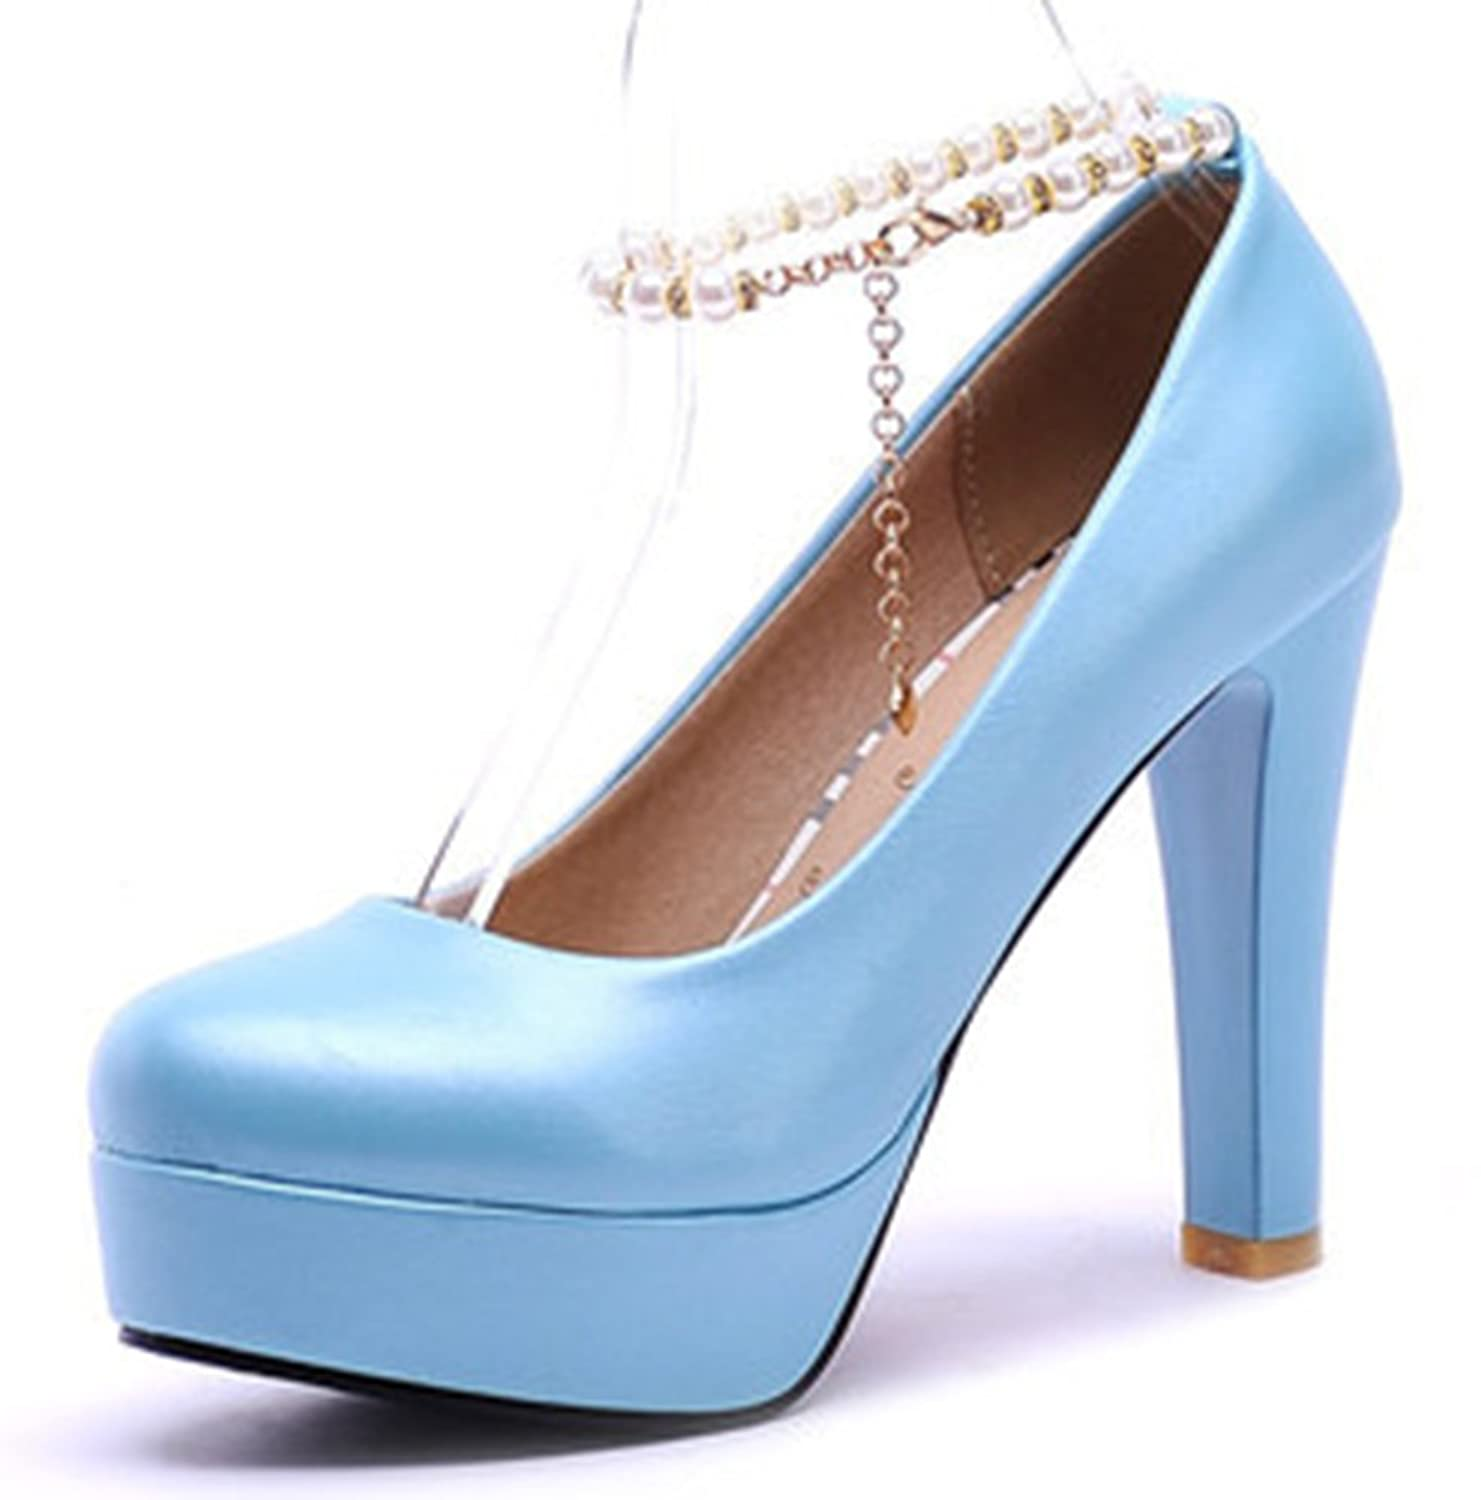 cd6e08d26e1f Sfnld Women s Elegant Round Toe Chain Strap Platform Pearls Bridal High  Chunky Heel Pumps Shoes